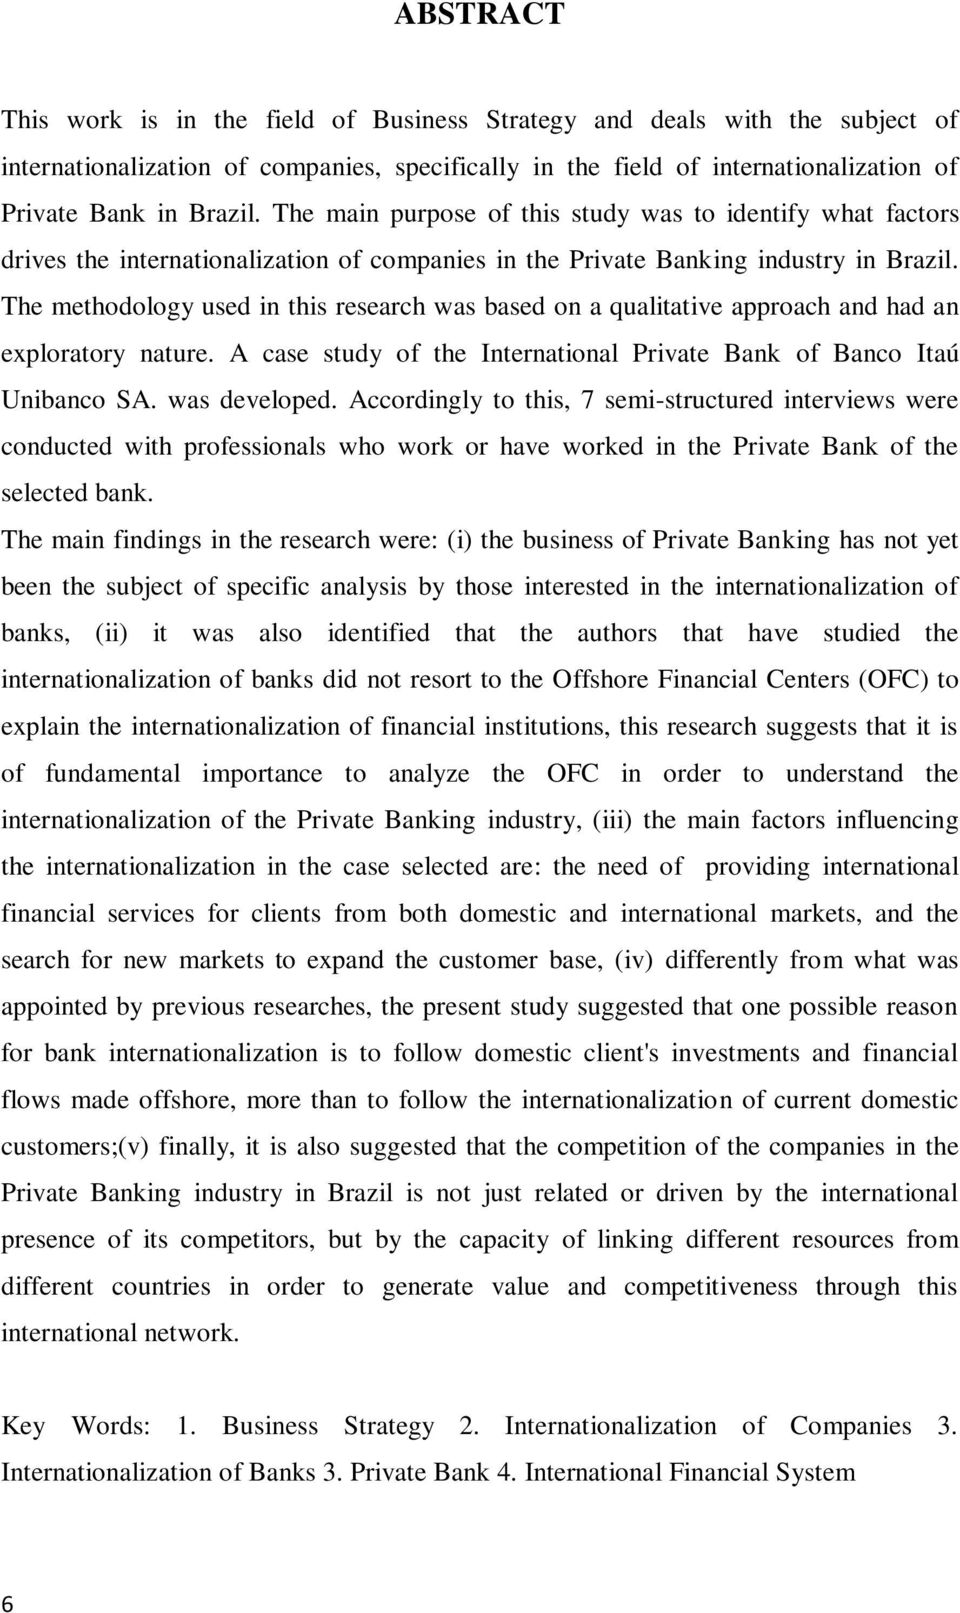 The methodology used in this research was based on a qualitative approach and had an exploratory nature. A case study of the International Private Bank of Banco Itaú Unibanco SA. was developed.